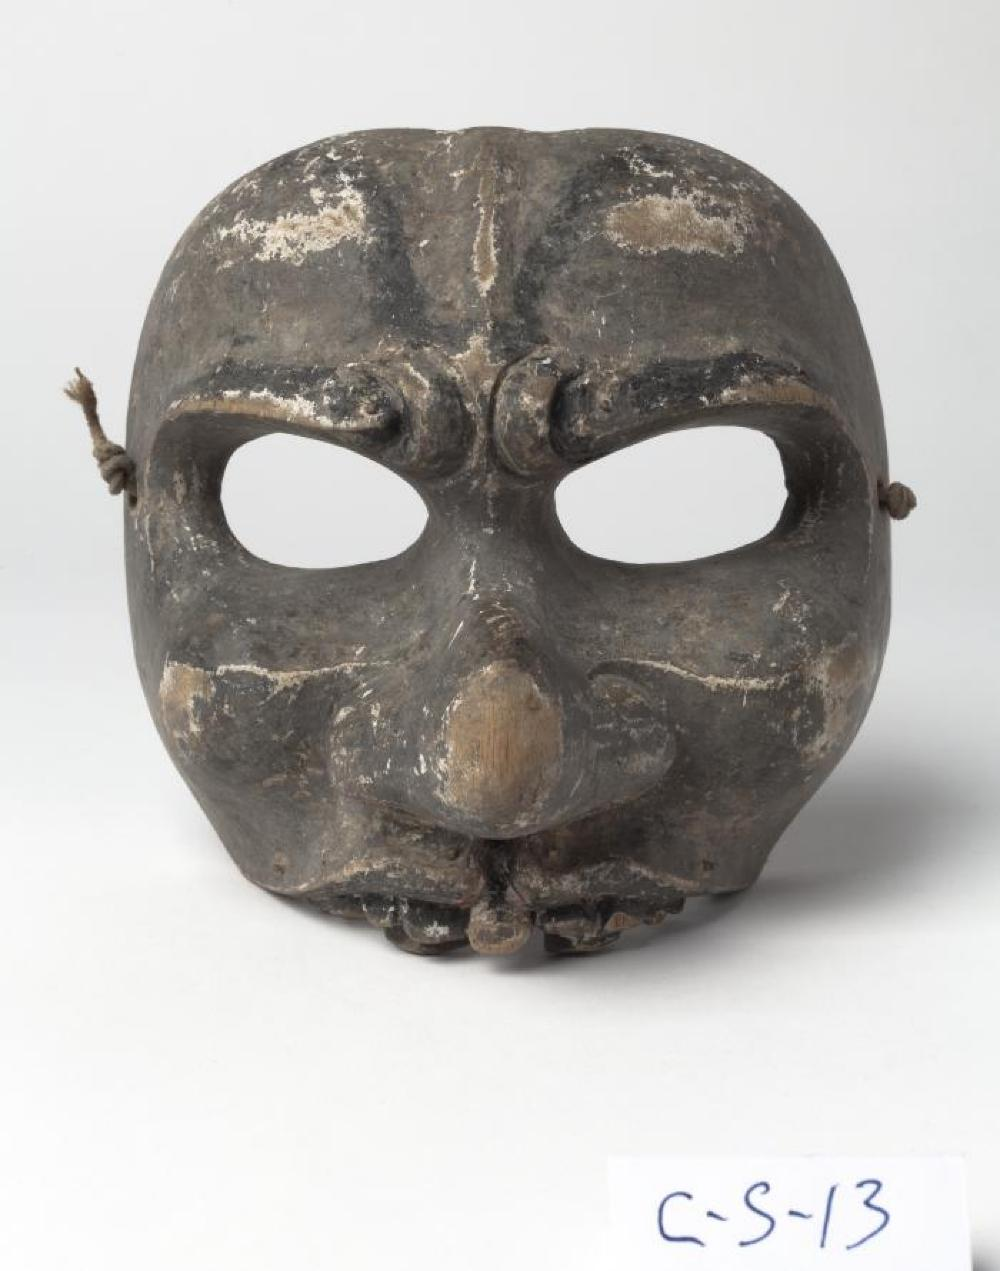 Balinese; Topeng Bondres Mask; 20th century; Painted wood; 5 1/2 x 5 3/4 x 4 in. ; Collection of Isamu Noguchi. (Study Collection; Collectibles, C-S-13)